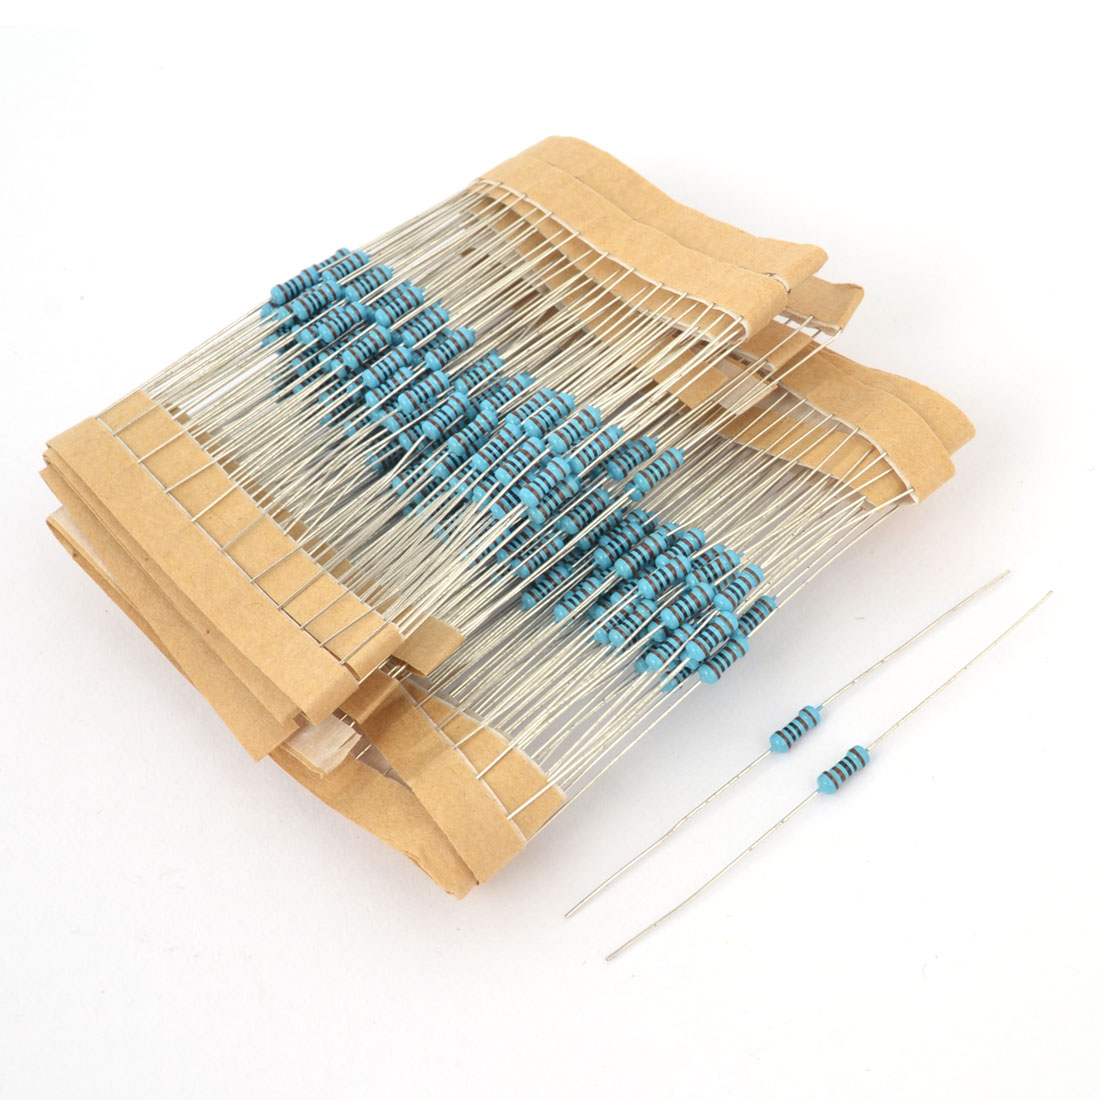 300 Pcs Axial Lead 0.25W 1% 1K Ohm Flameproof Electronic Metal Film Resistor